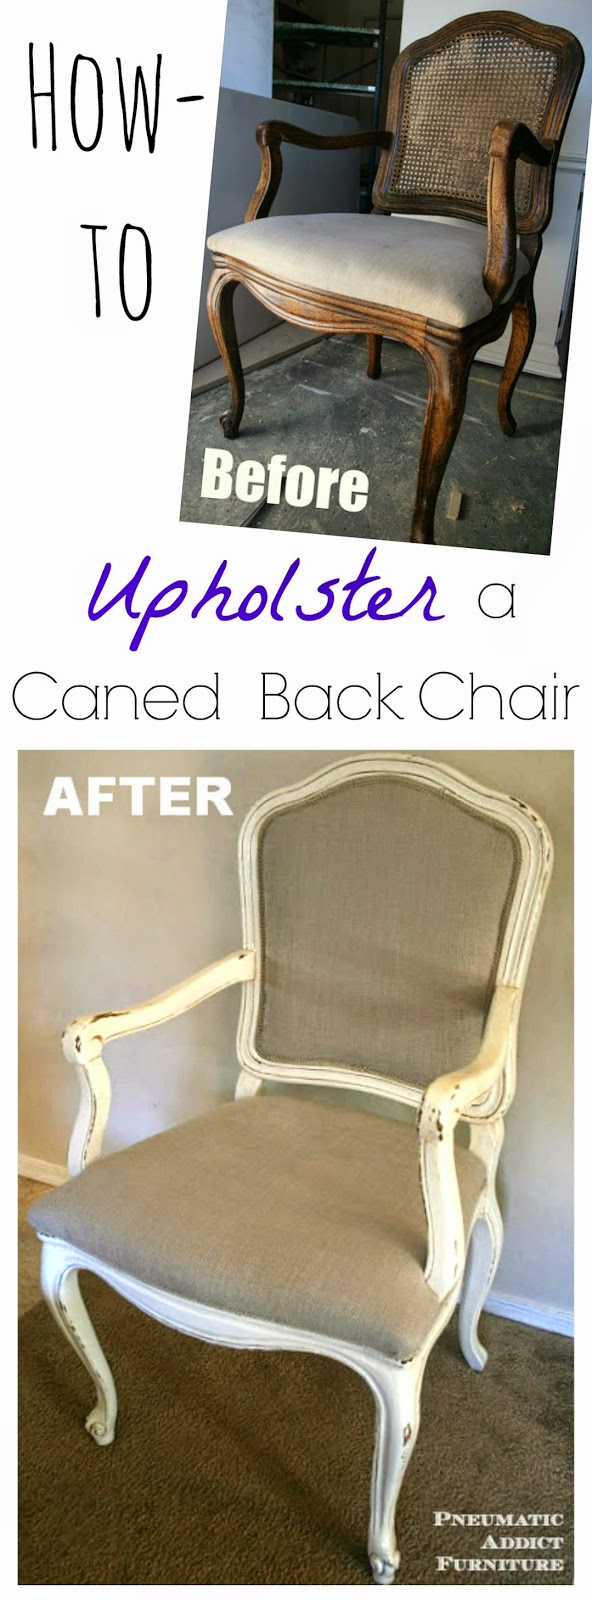 how to replace cane back chair with fabric extra large bean bag upholster a caned tutorial pneumatic addict let s be friends follow along so you don t miss thing